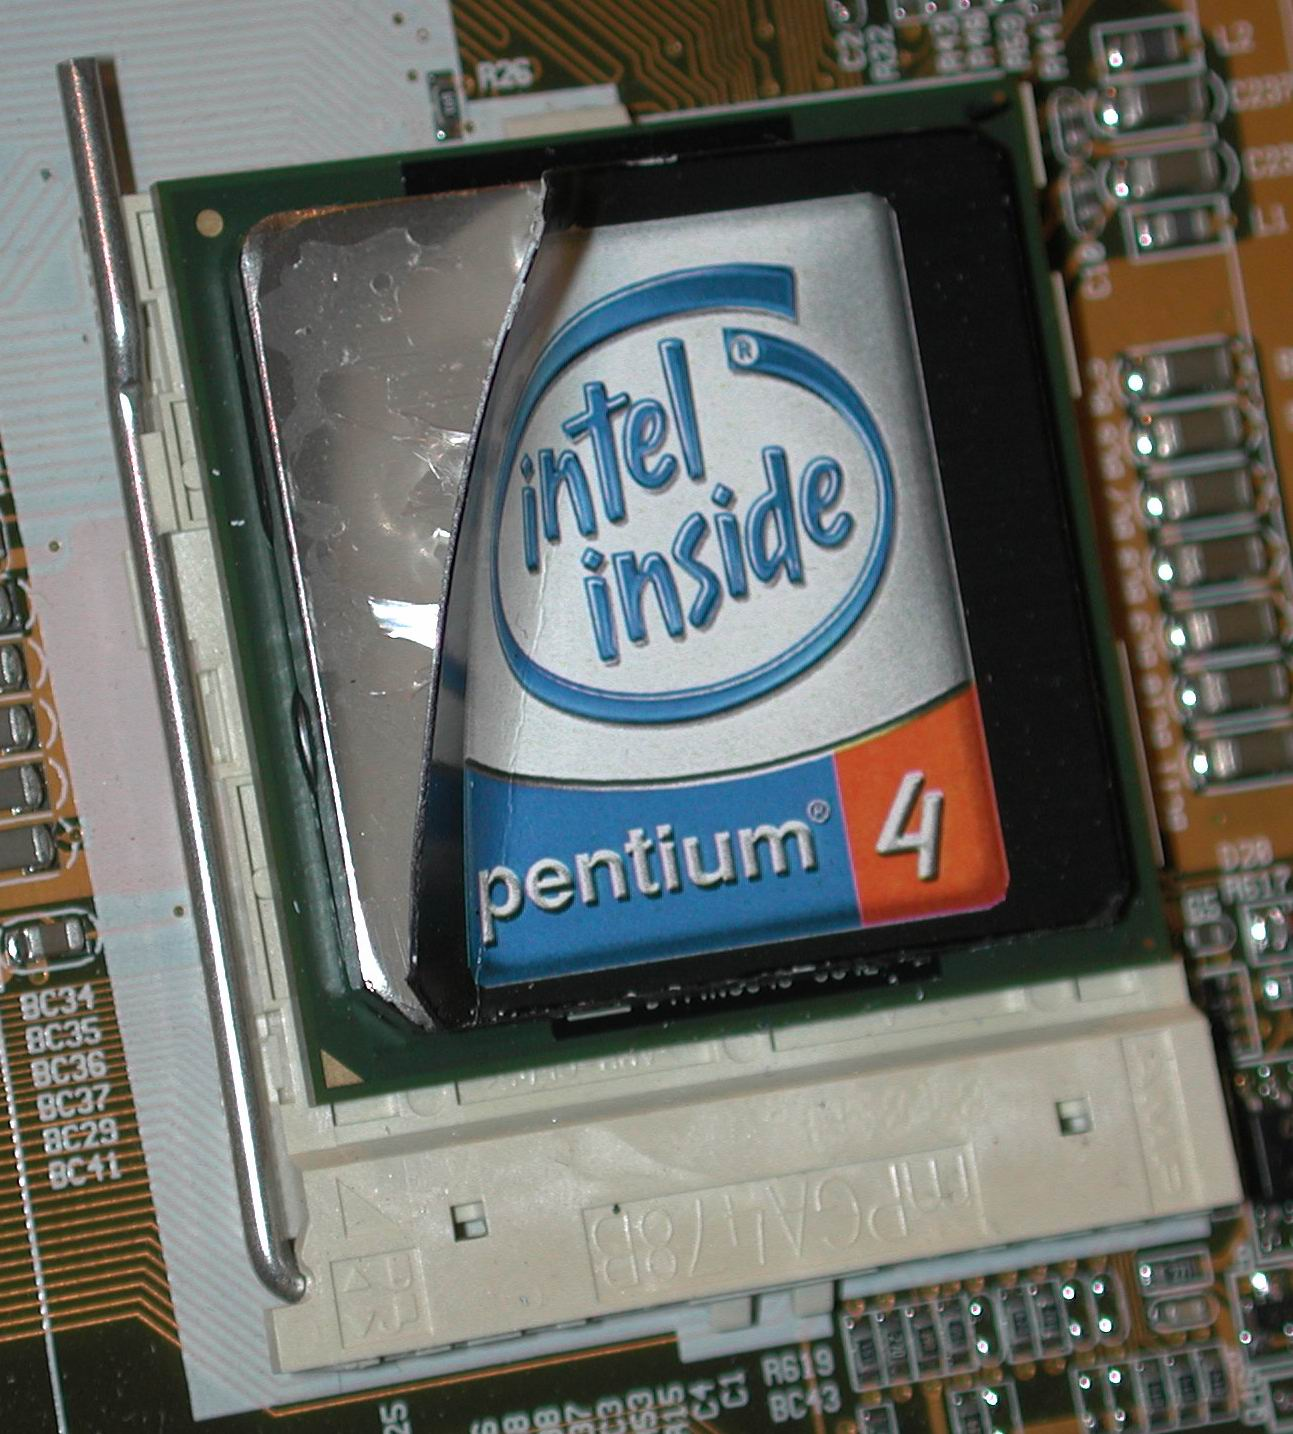 Intel Owns The Show Computex 2001 Day 1 Live Coverage Processor Pentium 4 Socket 478 This Particular Cpu Is Willamette Based Indicating That We Will In Fact See Current Migrate Over To As Well Probably Next